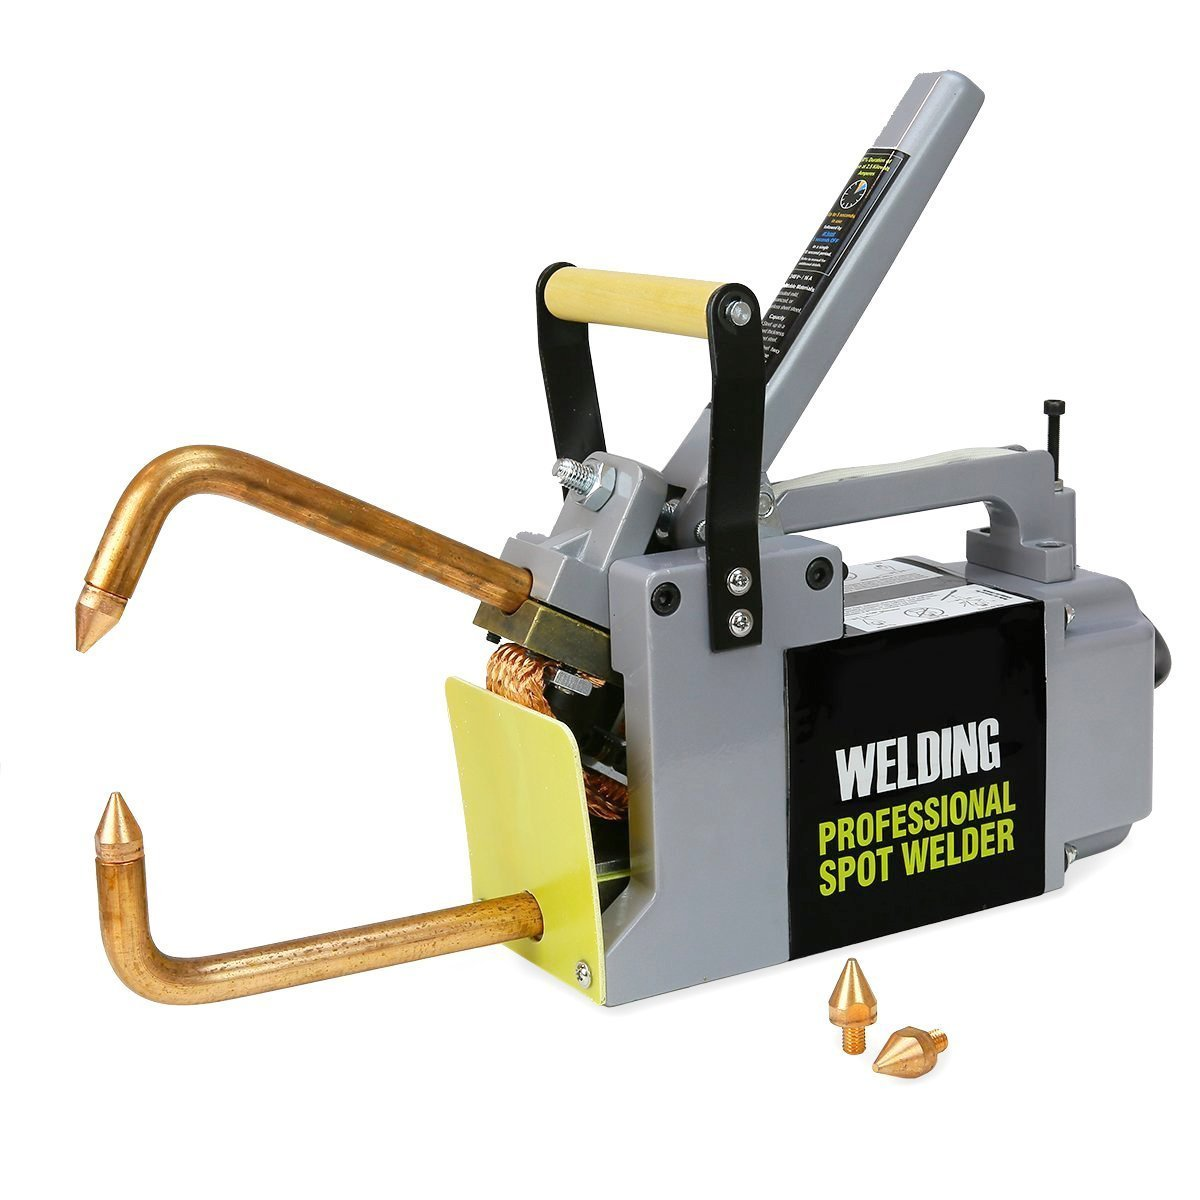 "Professional Electric Electric Spot Welder 1/8"" Single Phase 120-Volt Portable Welding Gun"